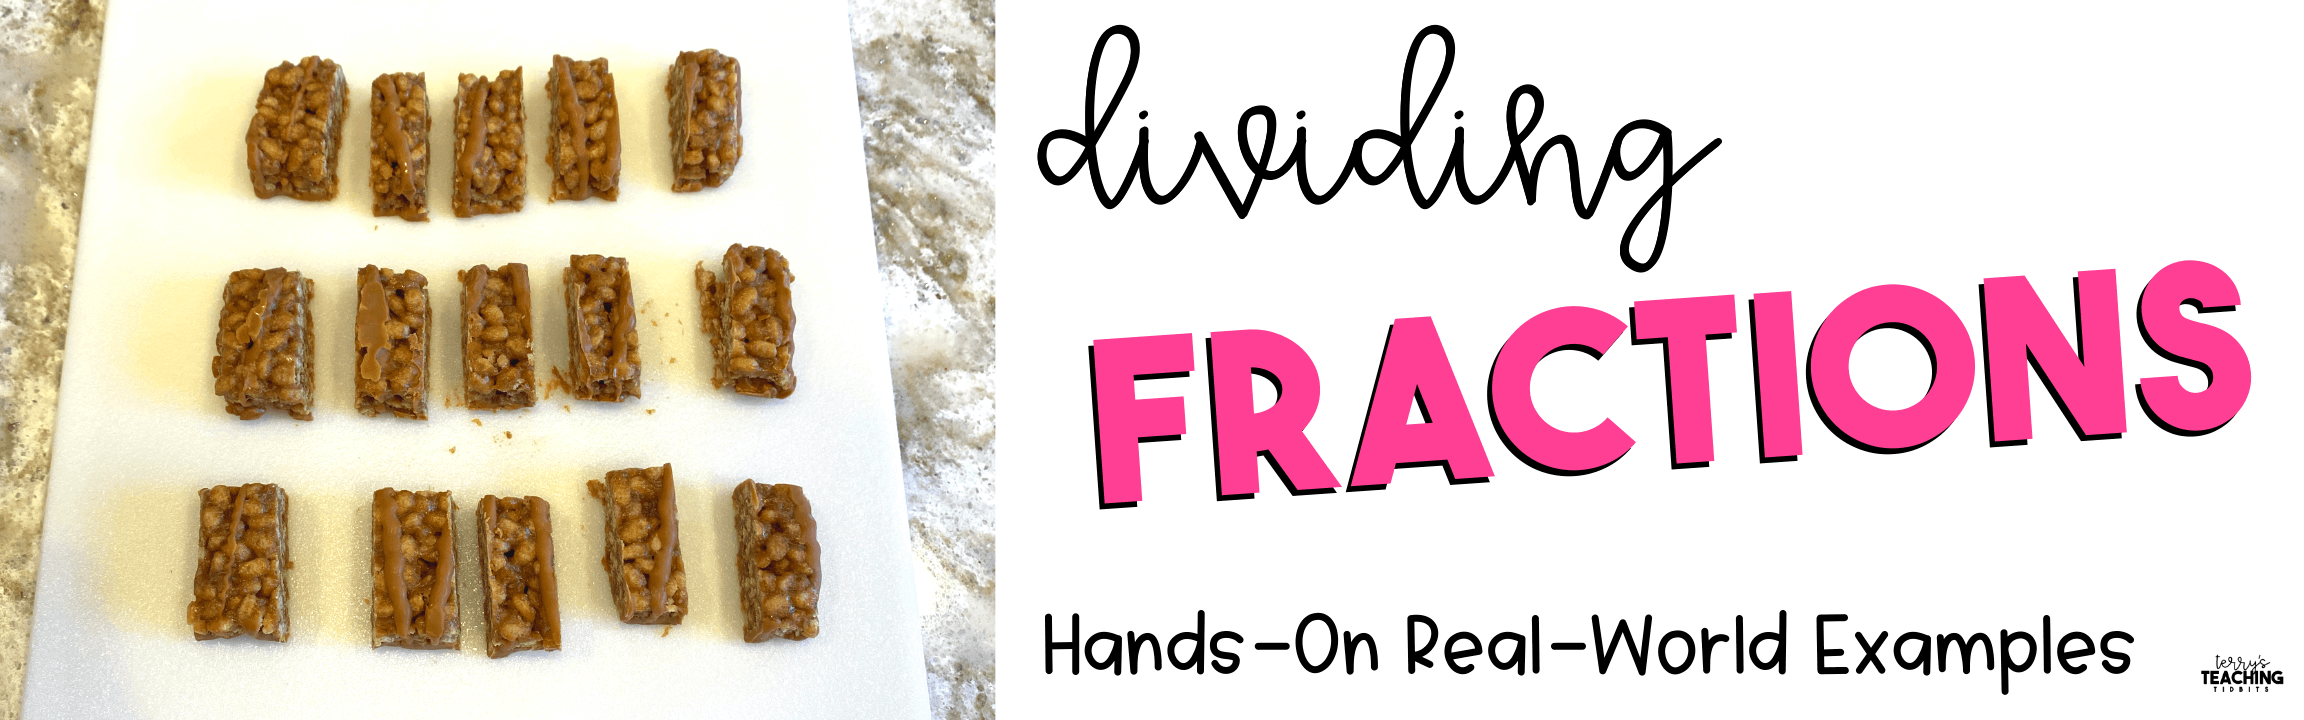 Dividing Fractions with Hands-On, Real-World Examples